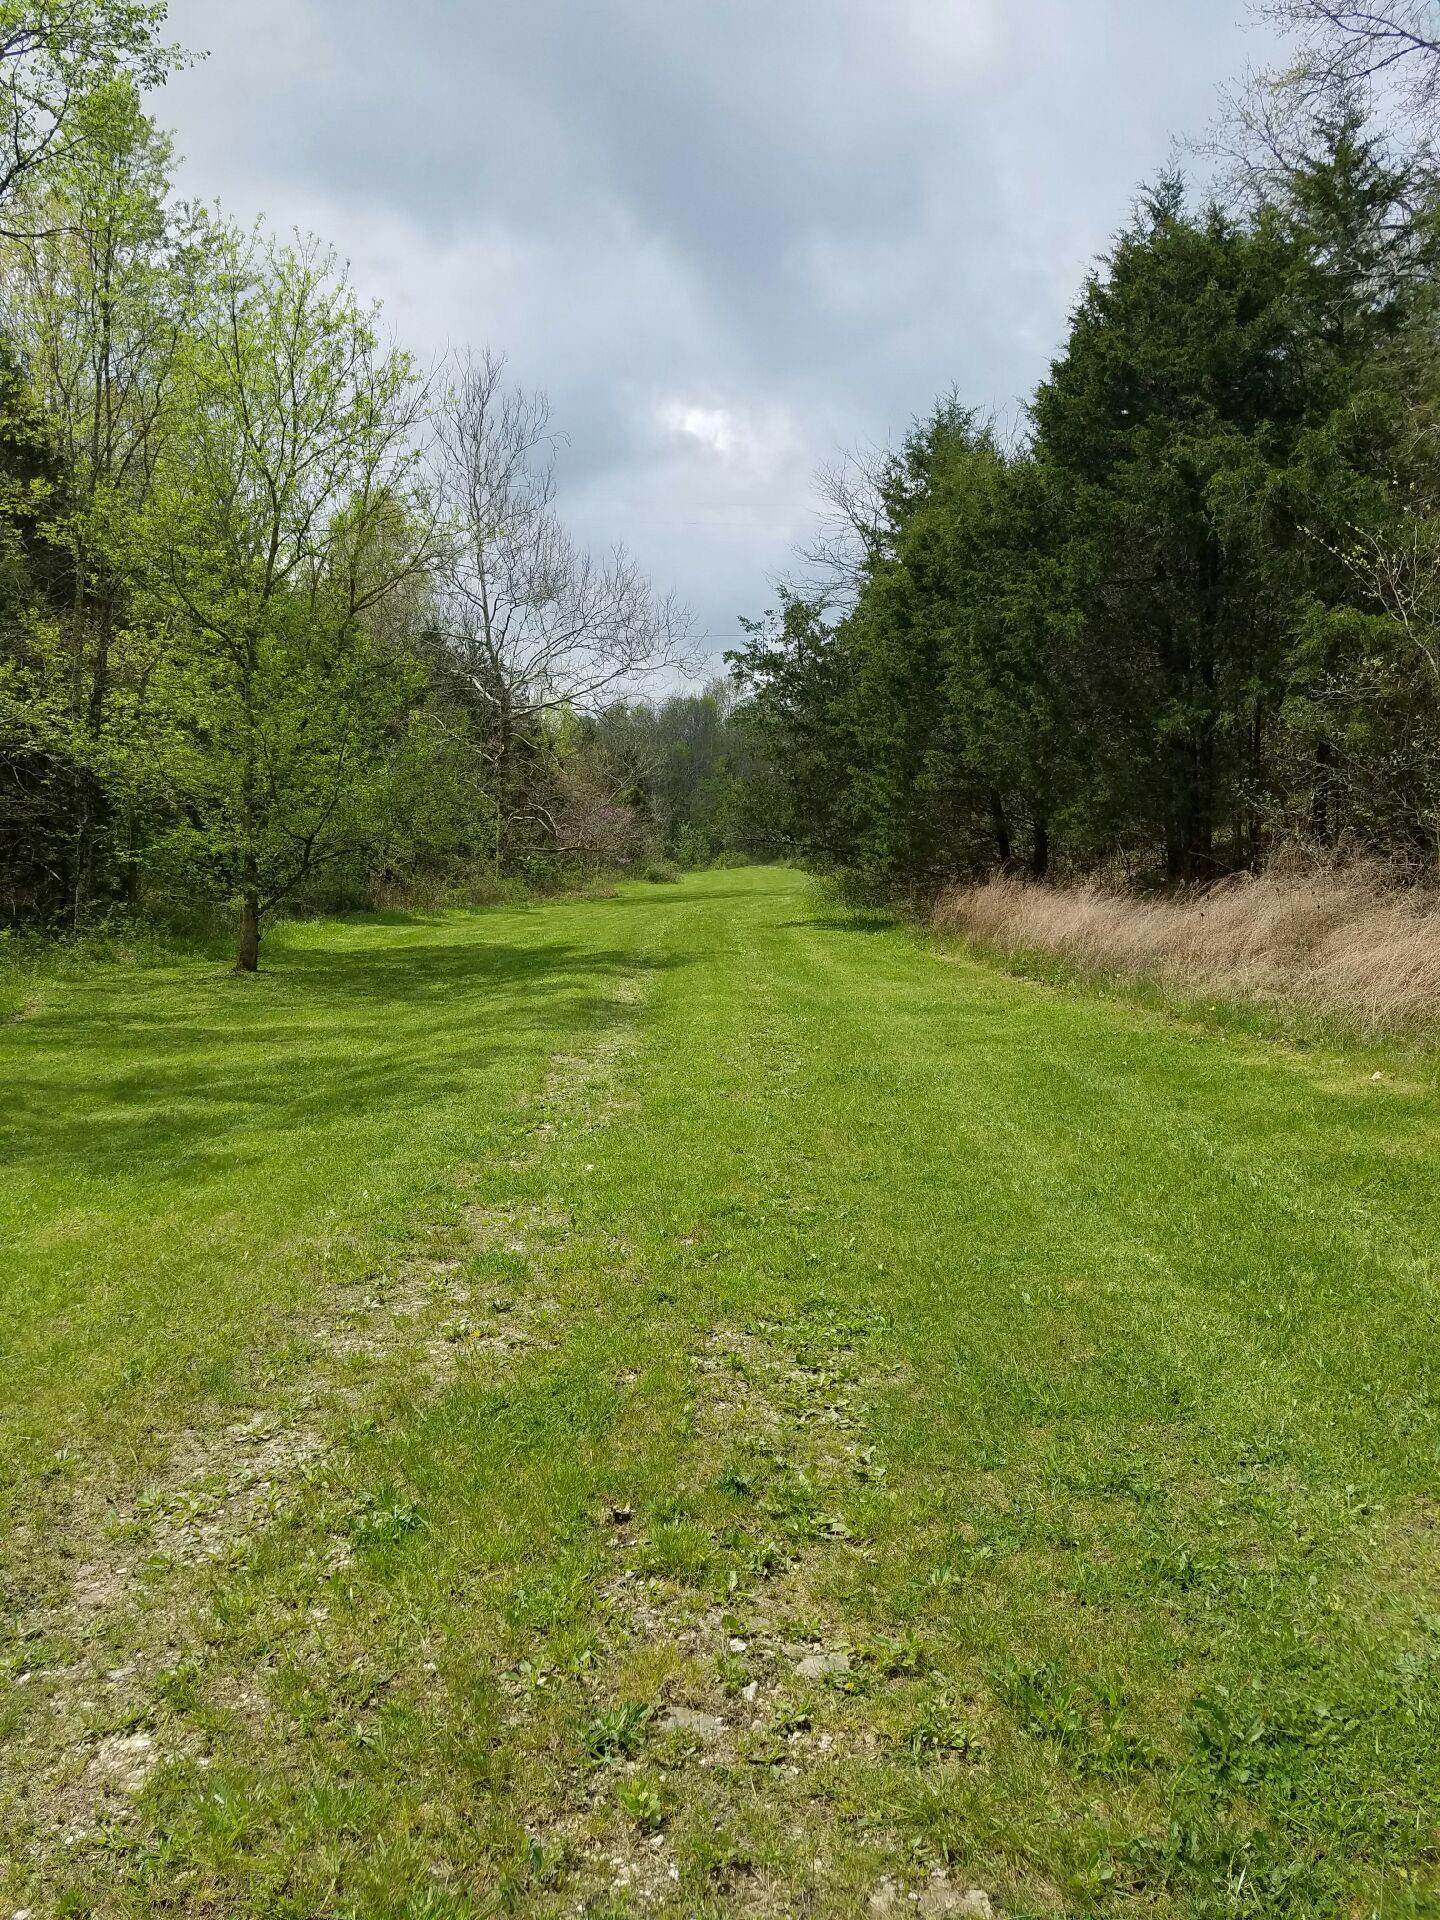 20%20park-like%20acres%20of%20field%20and%20forest.%20%20Flowering%20plum,%20redbud,%20oak,%20locust%20and%20lots%20of%20turkey%20and%20deer.%20Great%20for%20a%20retreat,%20hunting%20or%20other%20outdoor%20recreation.%20%20Several%20new%20outbuildings%20on%20the%20property%20including%20one%20currently%20used%20as%20a%20cabin.%20The%20cabin%20and%20run-in%20shed%20have%20gutters%20and%20are%20ready%20for%20rain%20barrels.%20There%20is%20no%20realty%20sign